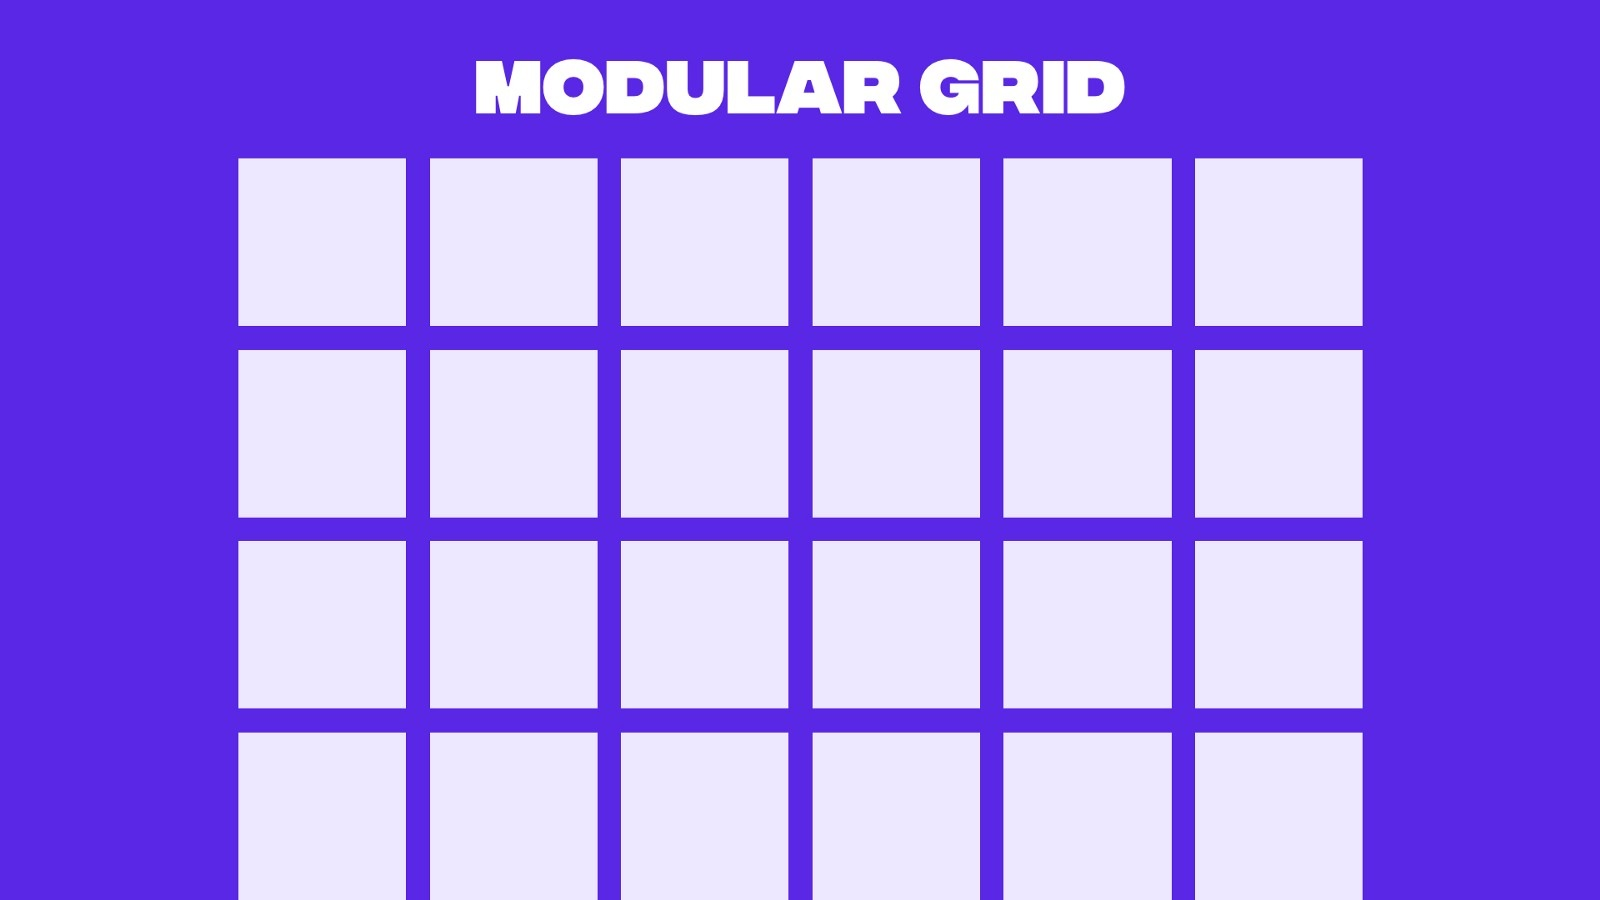 Example of a modular grid